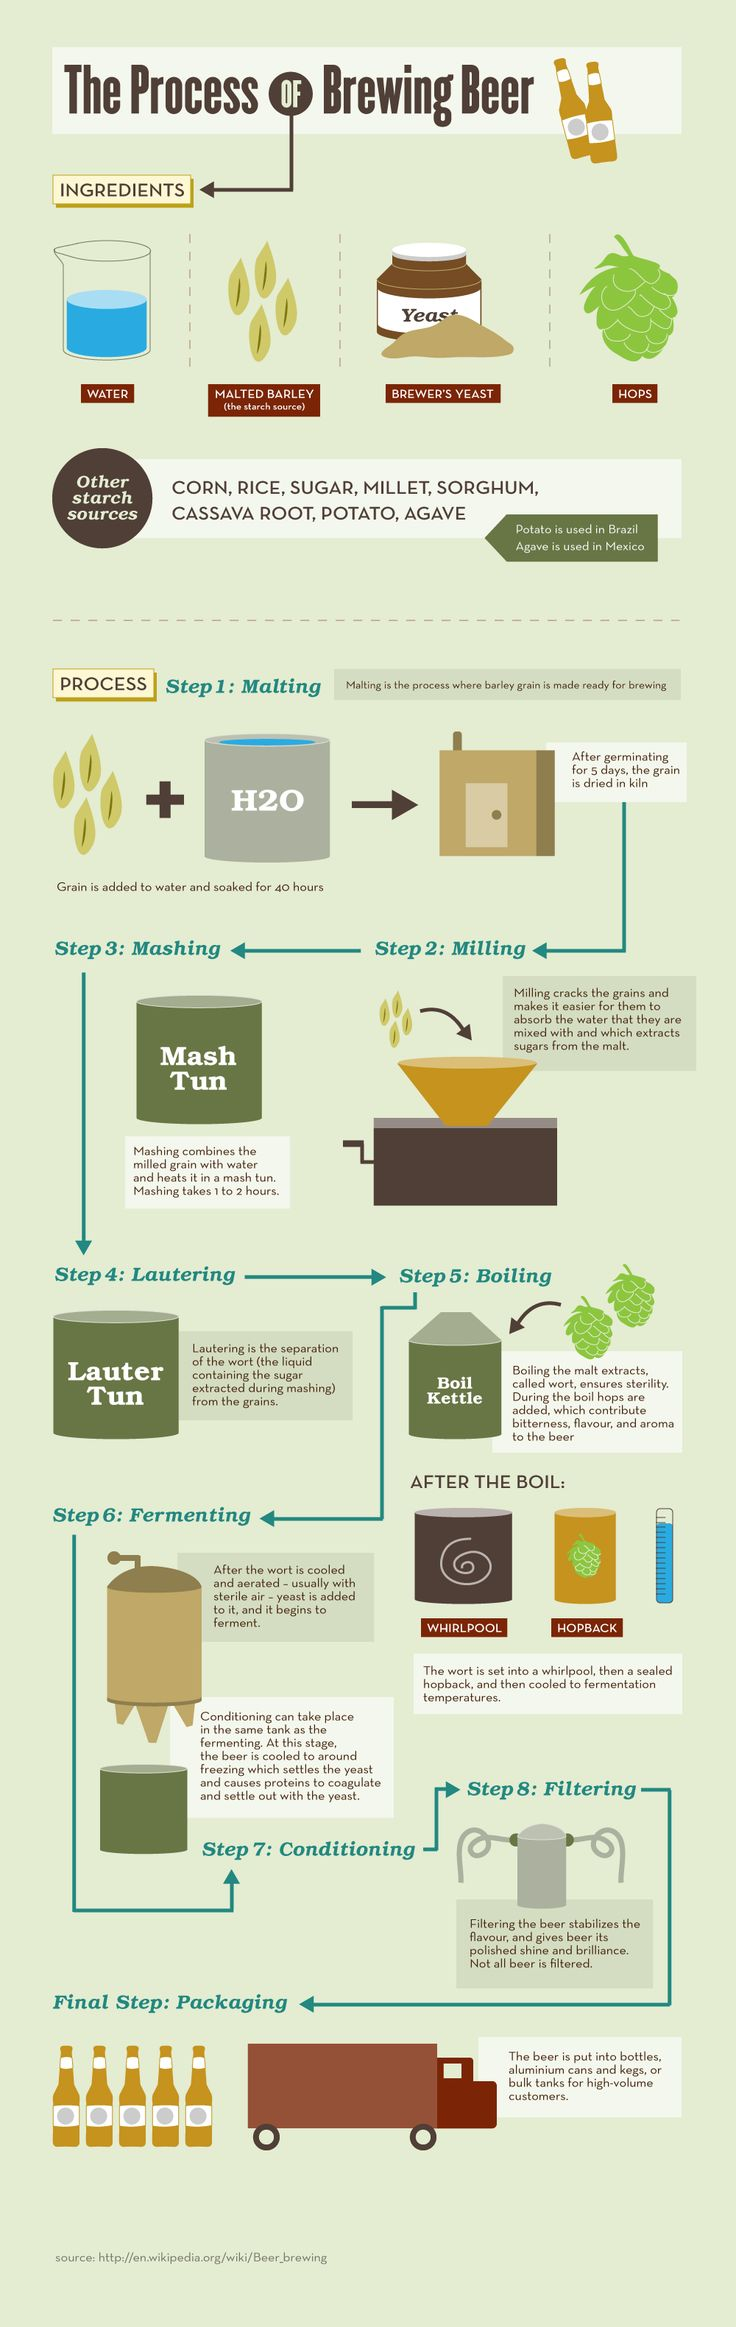 Process of Brewing Beer//CA Culinary Schools